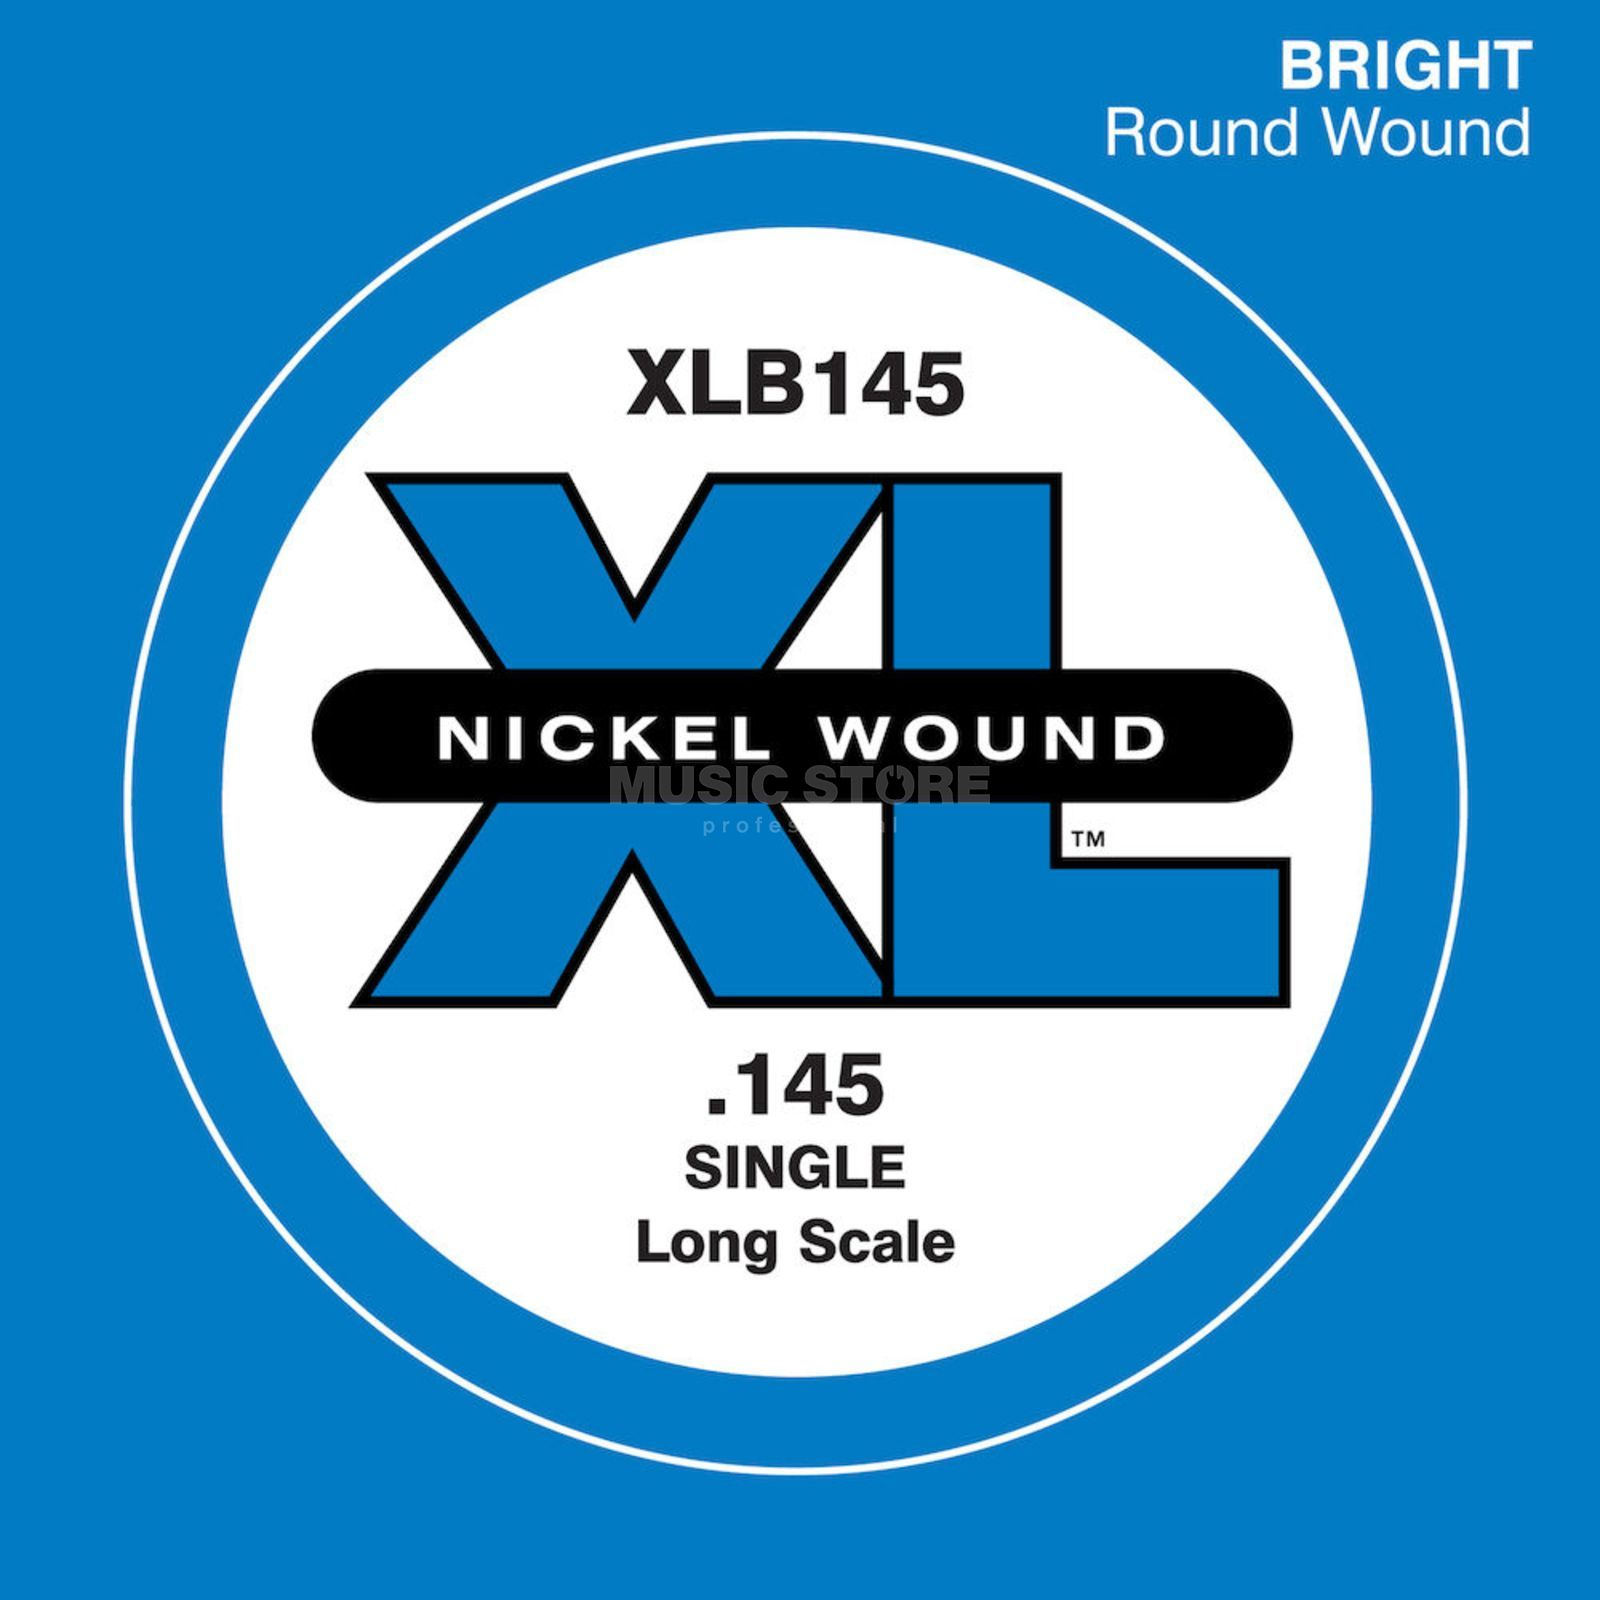 D'Addario XLB145 Bass String Round Wound .145 (Single) Zdjęcie produktu